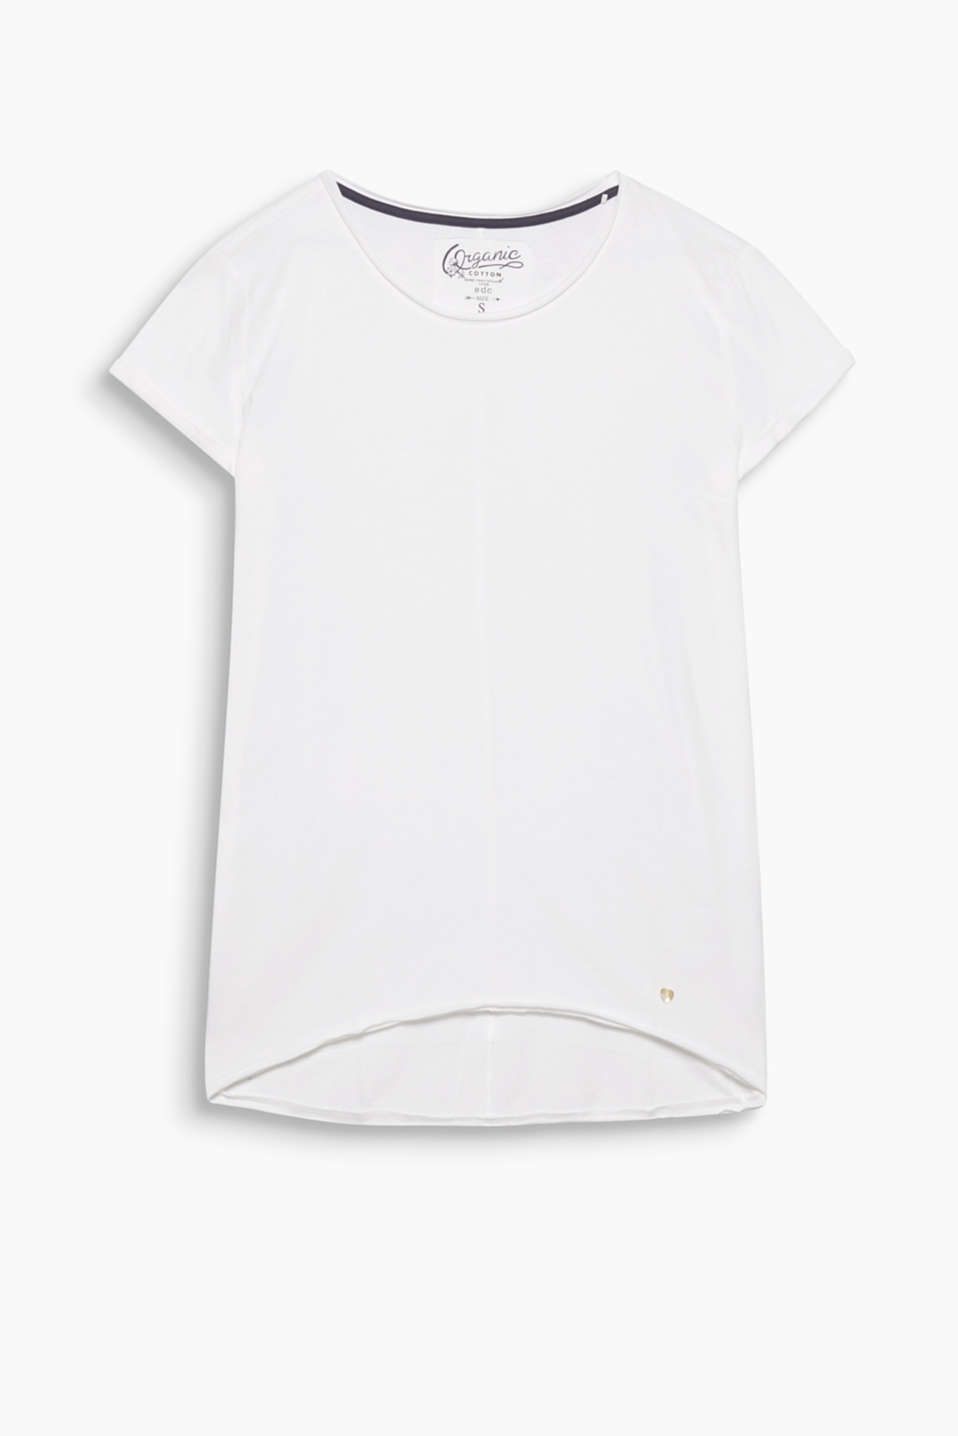 Cotton blend T-shirt with a wide round neckline, a high-low hem and turned-up, fixed sleeve ends